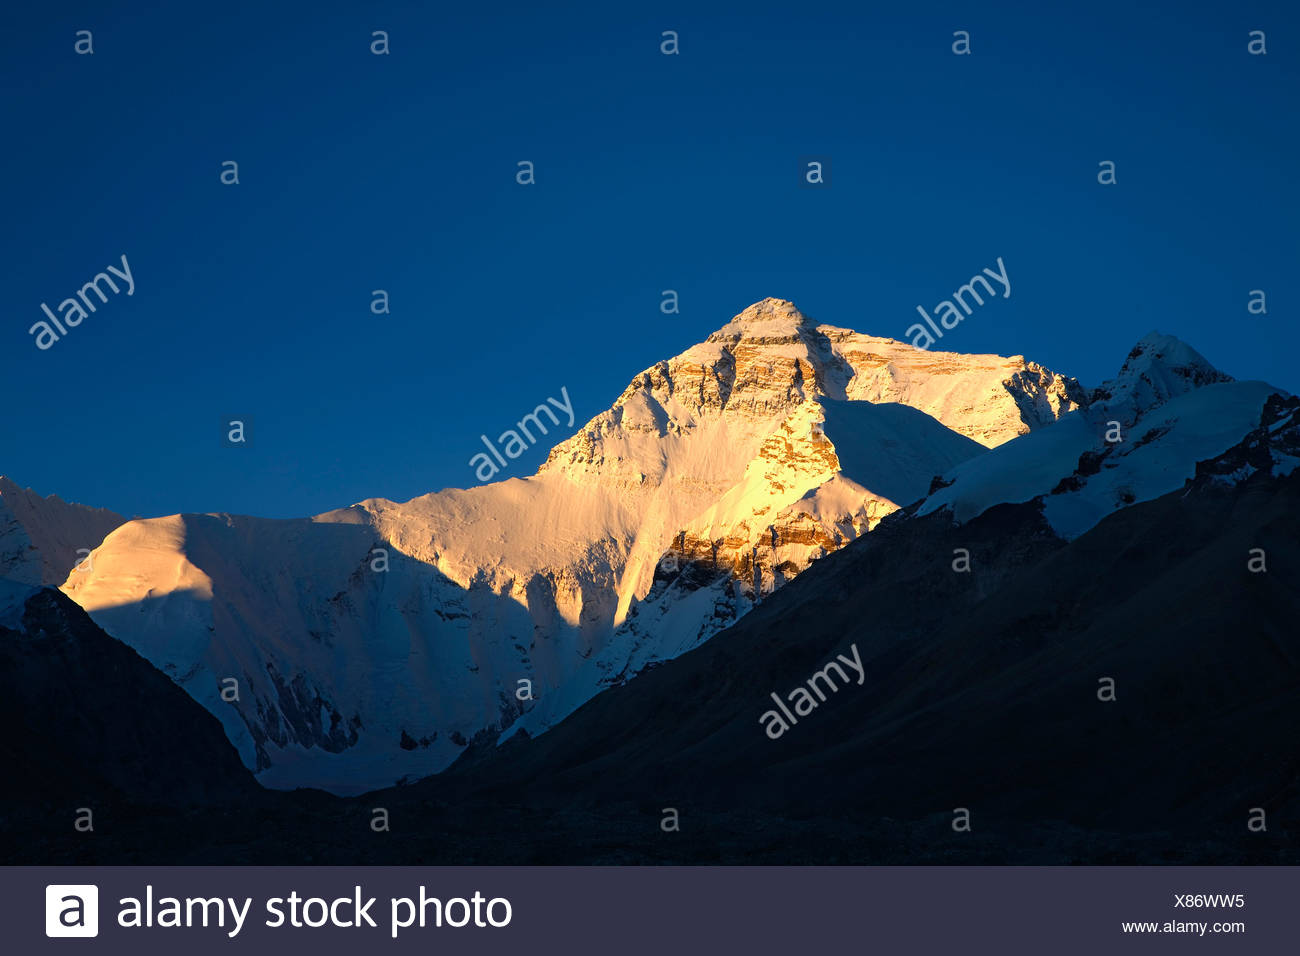 Mt. Everest in Tibet,China - Stock Image